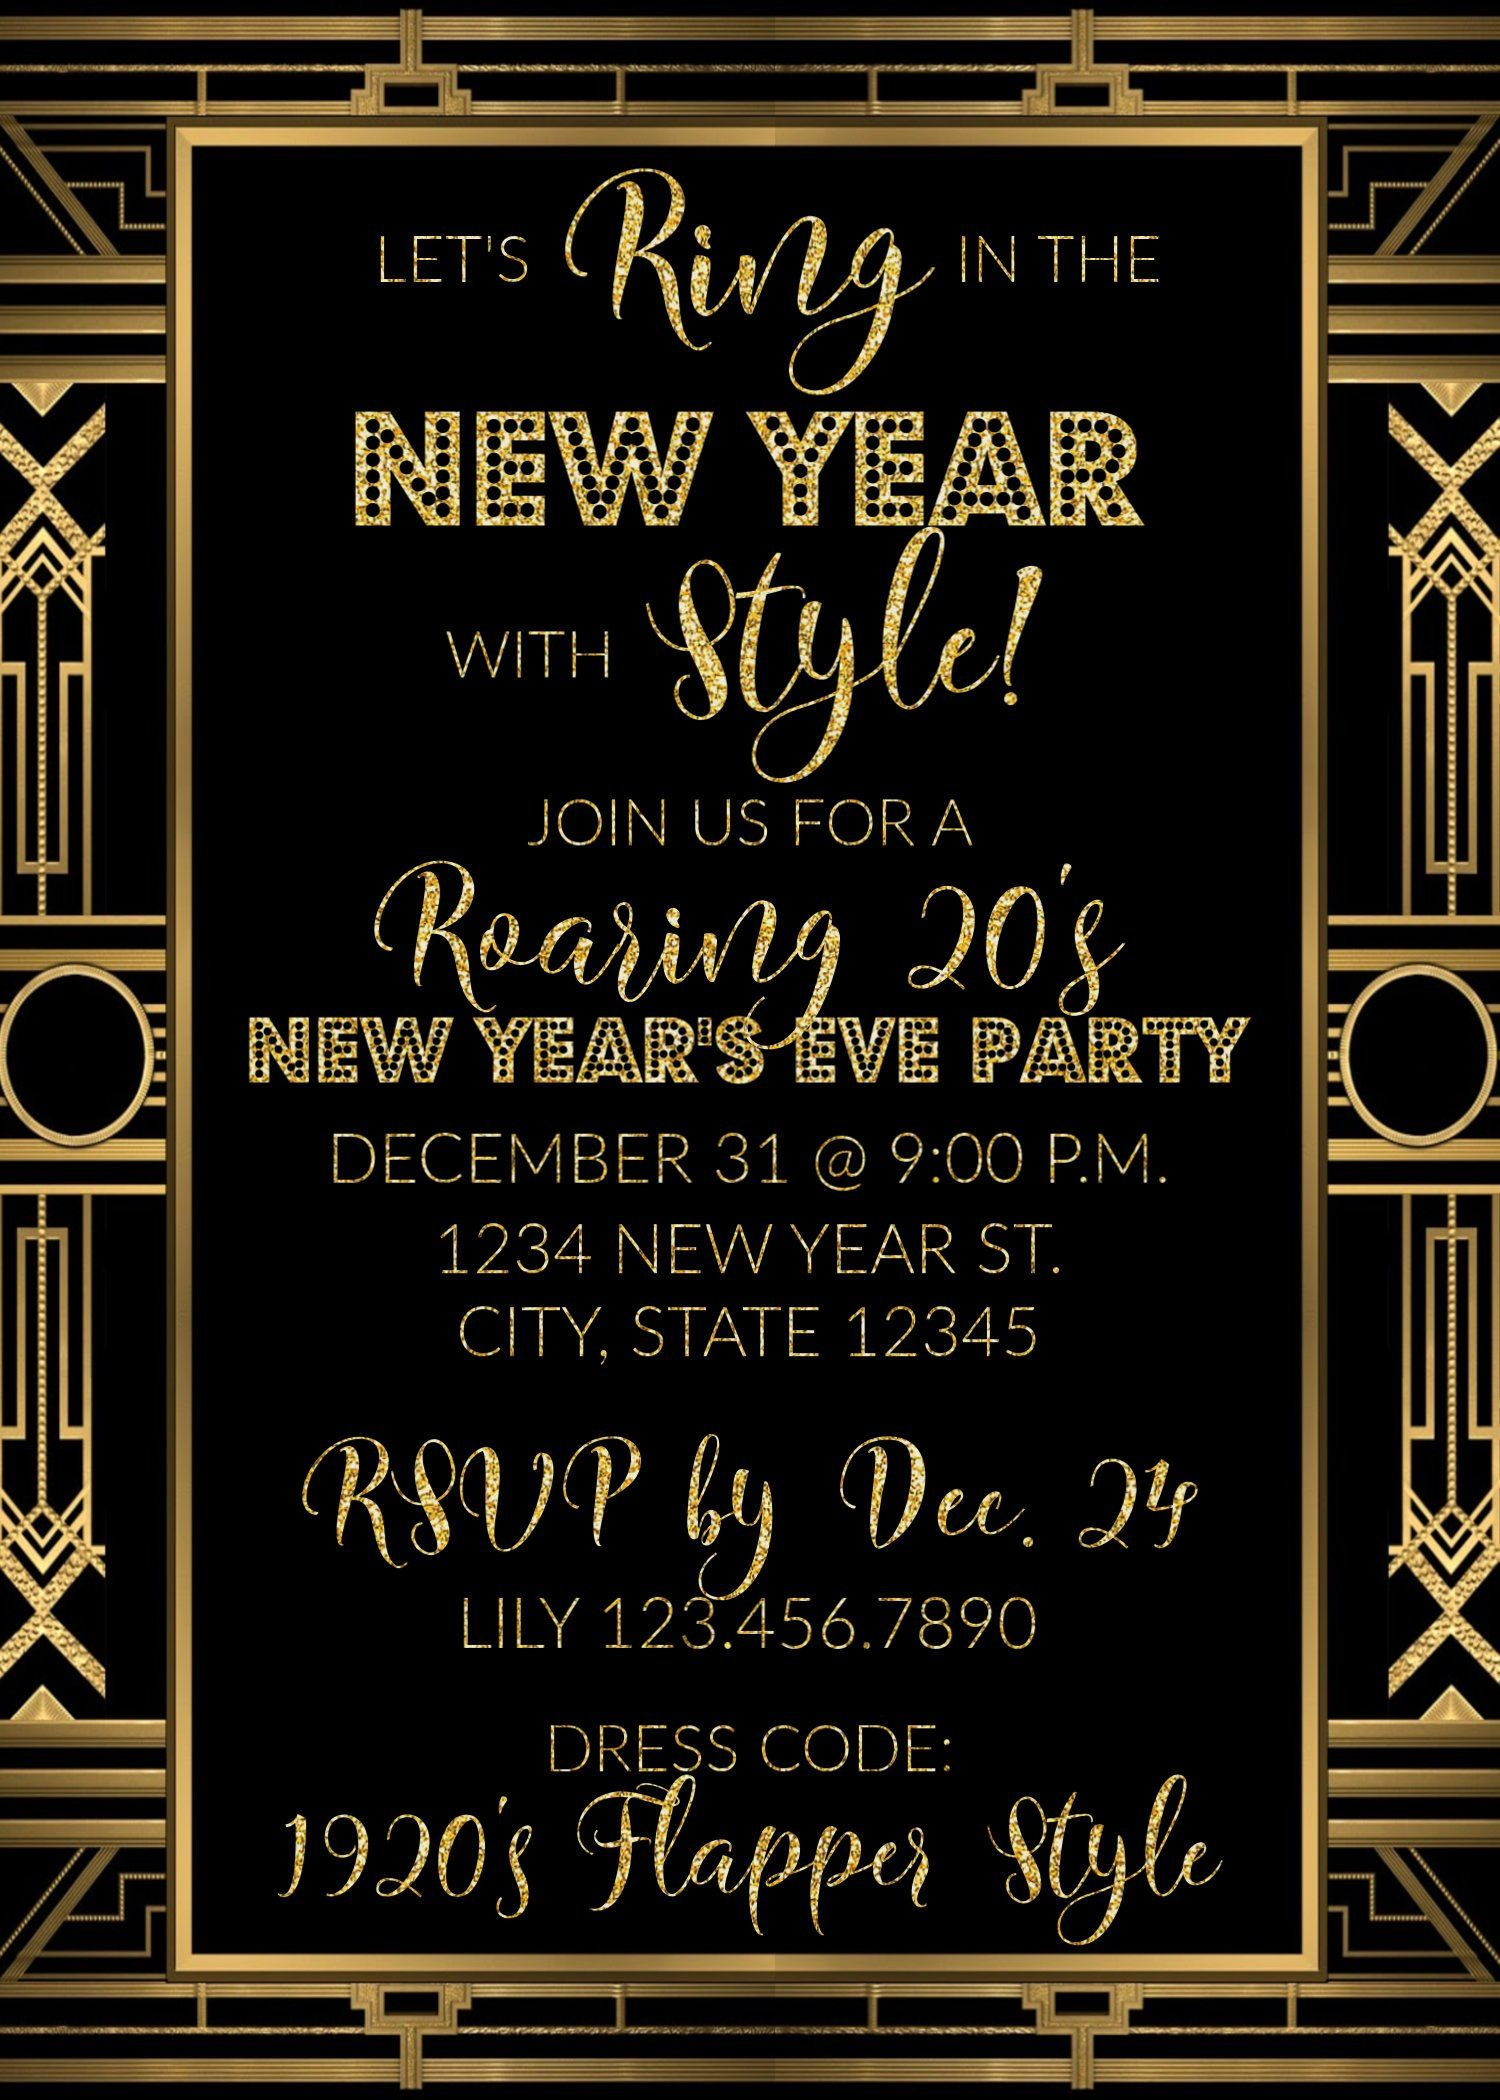 Roaring 20s New Years Eve Party Invitation Ring In The New Etsy New Year S Eve Party Themes 20s Party Invitation New Years Eve Invitations